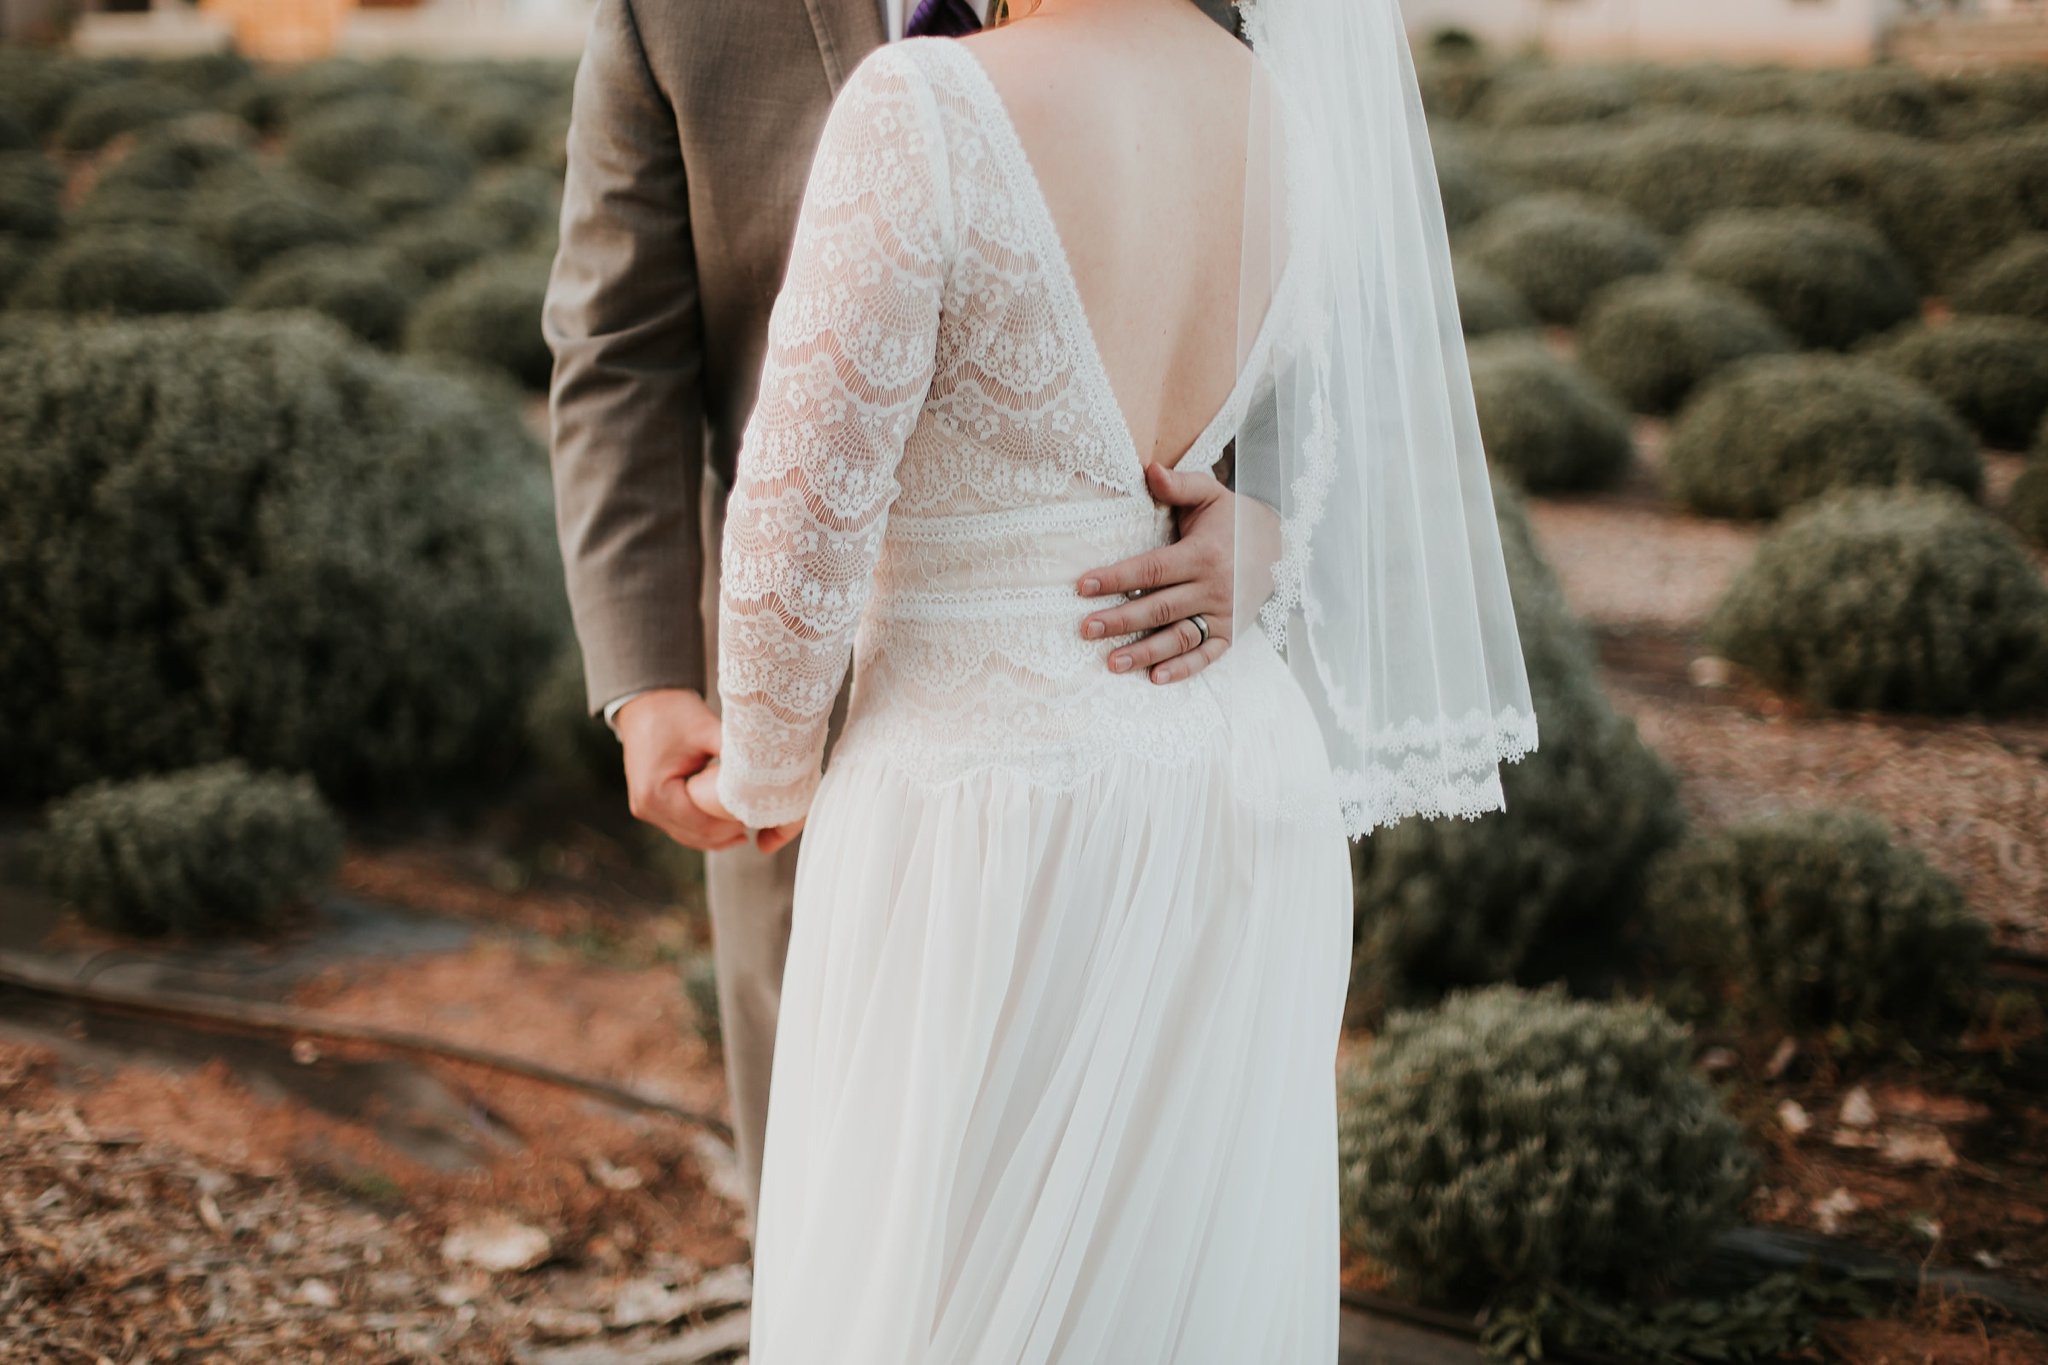 Alicia+lucia+photography+-+albuquerque+wedding+photographer+-+santa+fe+wedding+photography+-+new+mexico+wedding+photographer+-+new+mexico+wedding+-+wedding+gowns+-+bridal+gowns+-+a+line+wedding+gown_0072.jpg